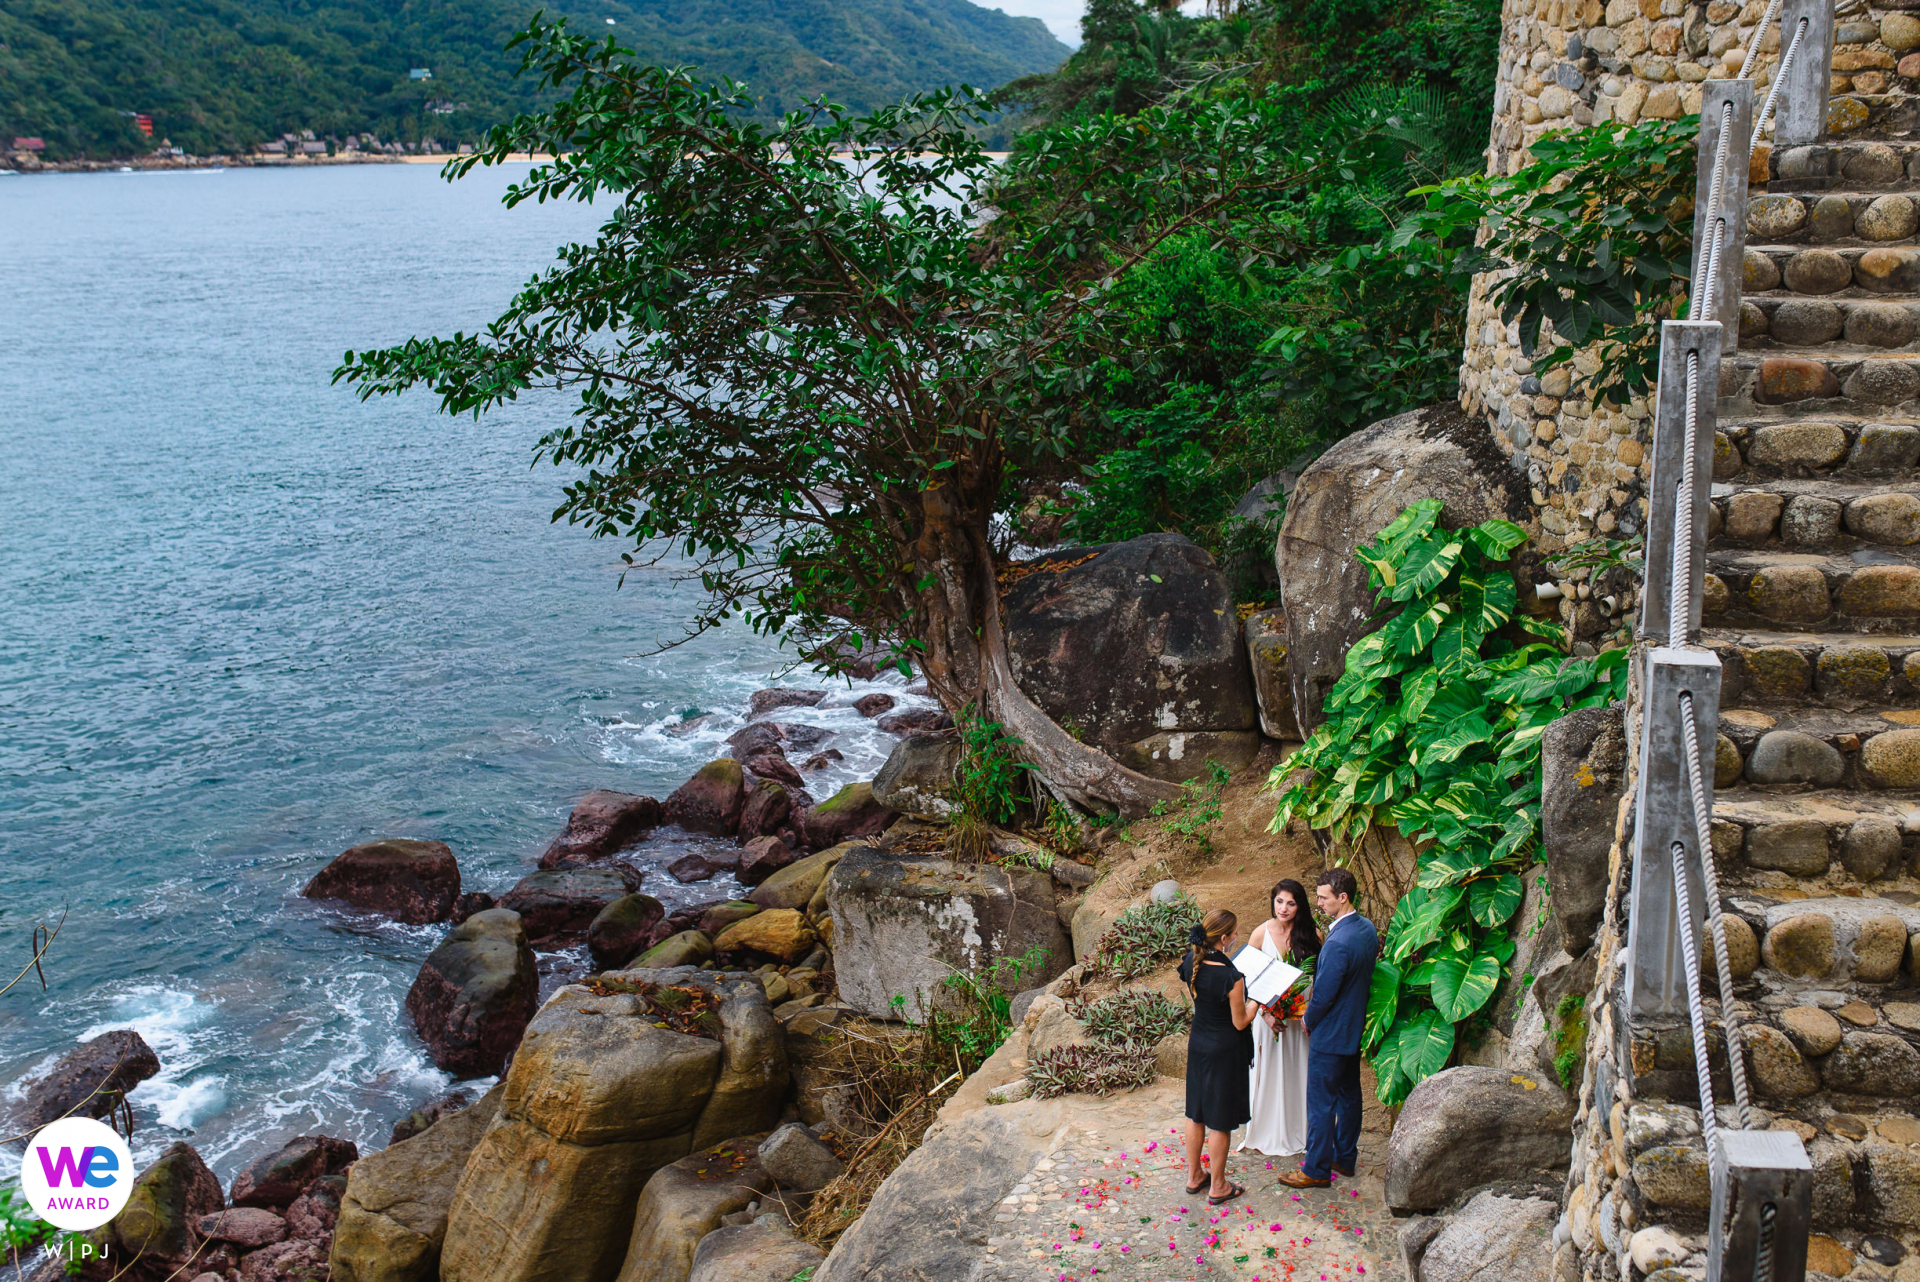 Yelapa, Mexico Beach Elopement Photography Story | married outside surrounded by flower petals beside a rocky beach and blue water at Verana in Yelapa, Mexico